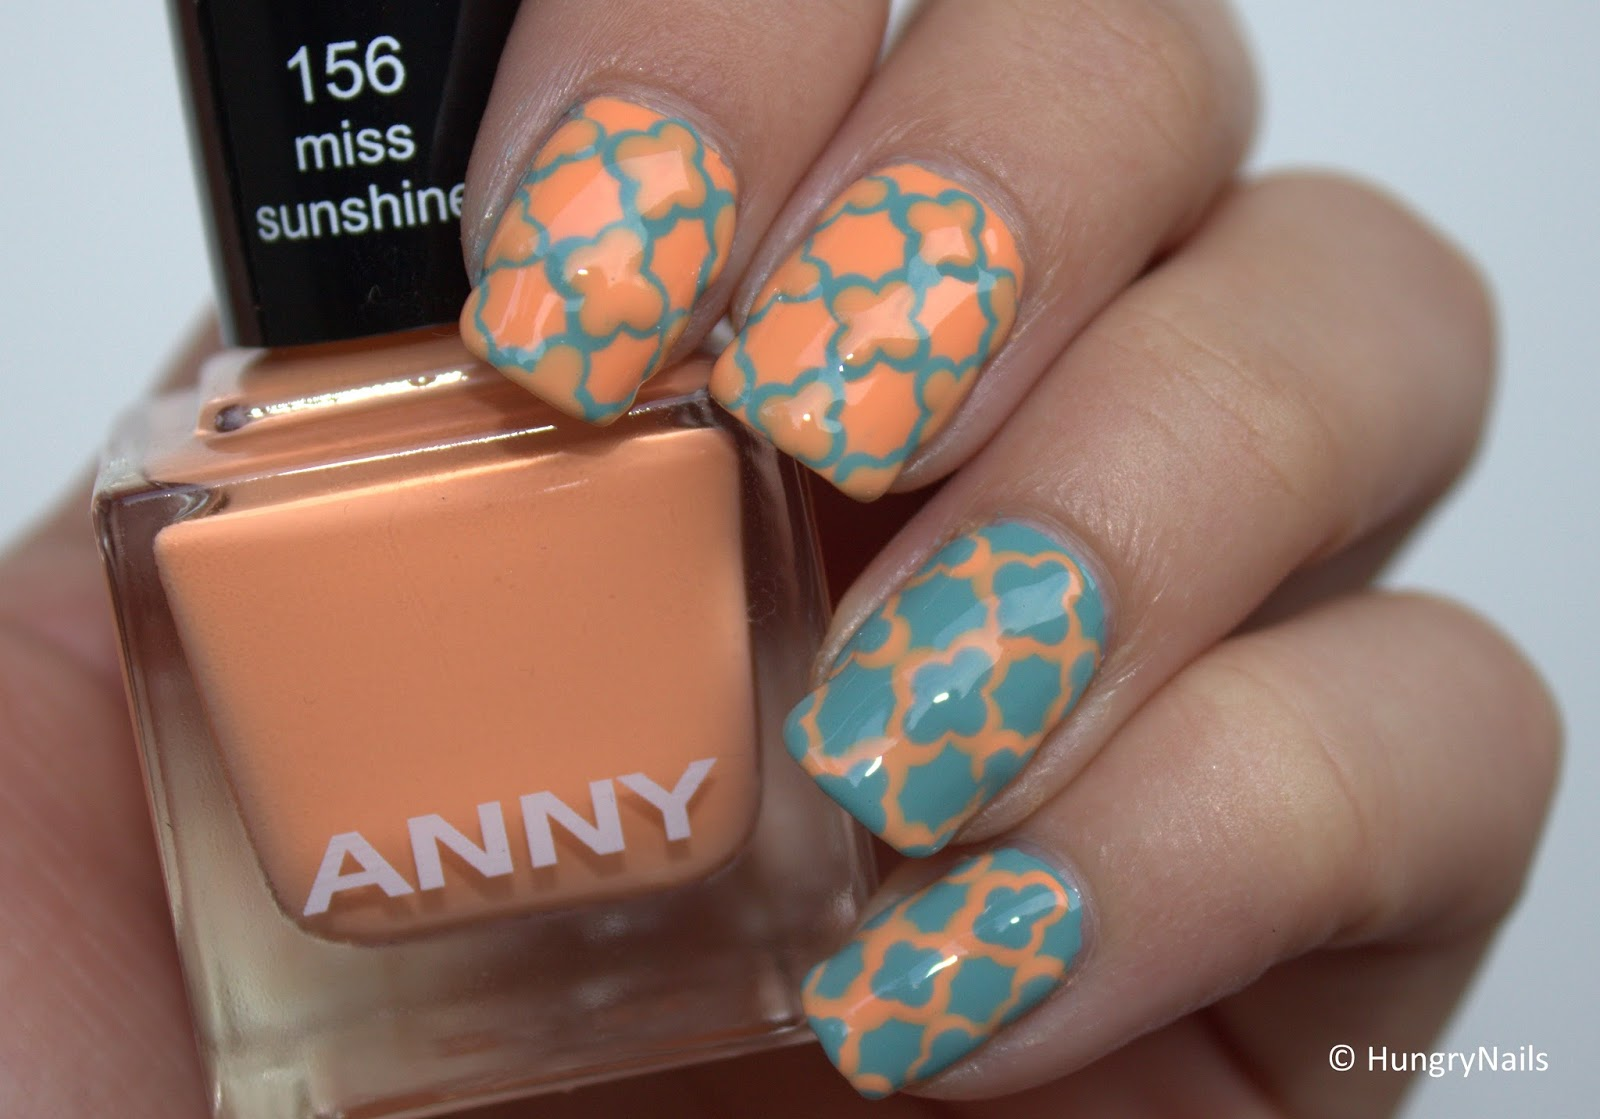 http://hungrynails.blogspot.de/2014/07/anny-yachting-holidays-quatrefoil-design.html